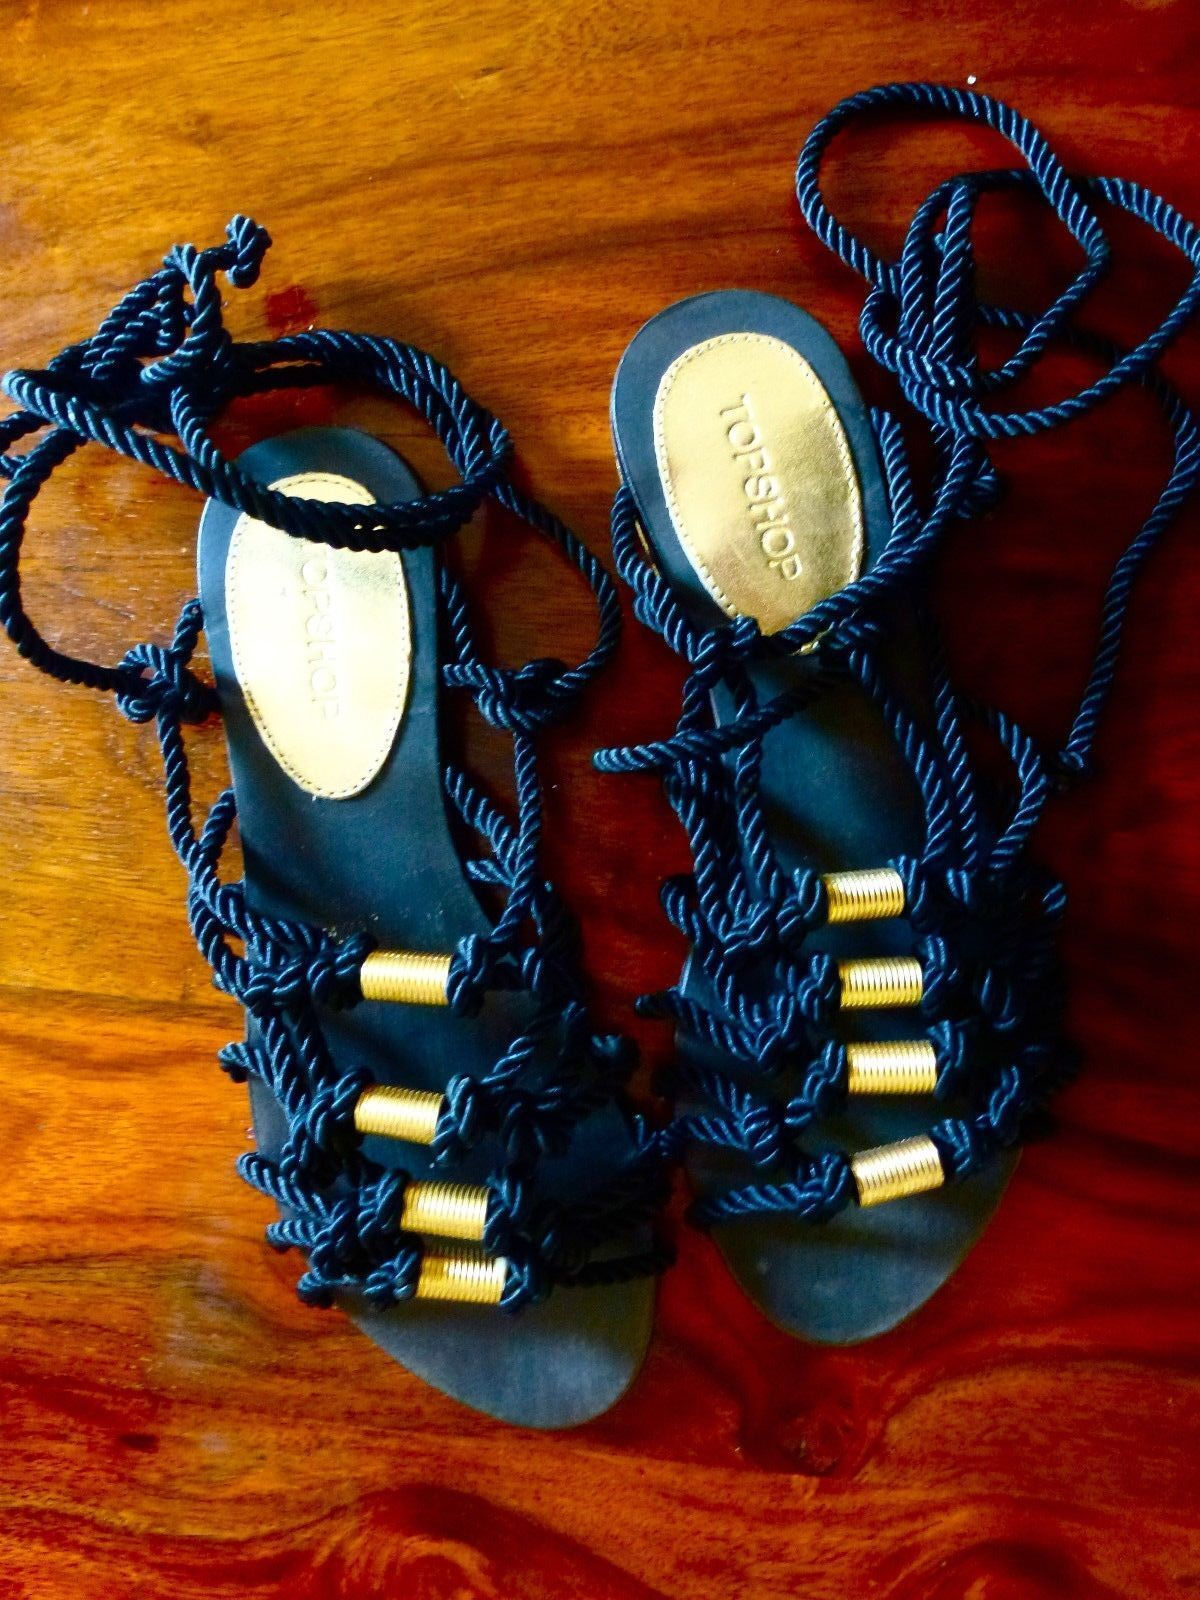 TOPSHOP BLACK ROPE STRAPPY ROMAN GLADIATOR SANDALS Schuhe FLATS BOOTS 4 37 6.5